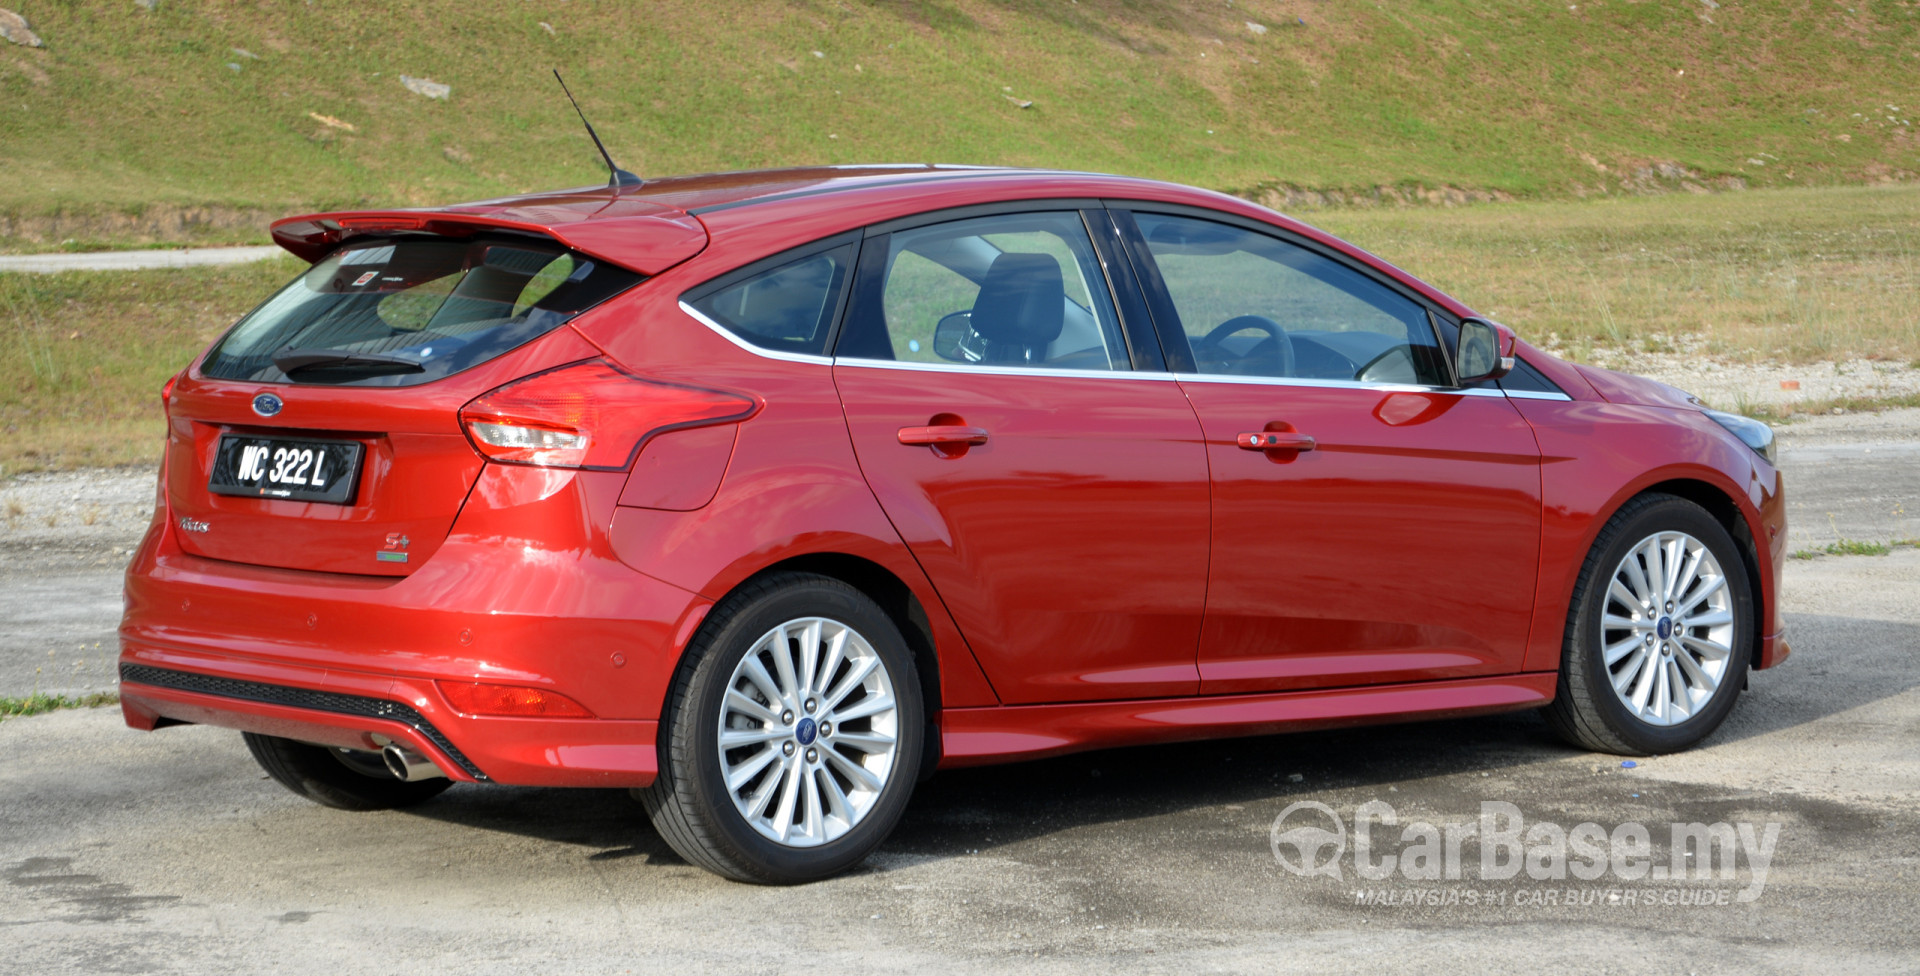 Ford Focus Mk3 C346 Fl 2016 Exterior Image 27957 In Malaysia Reviews Specs Prices